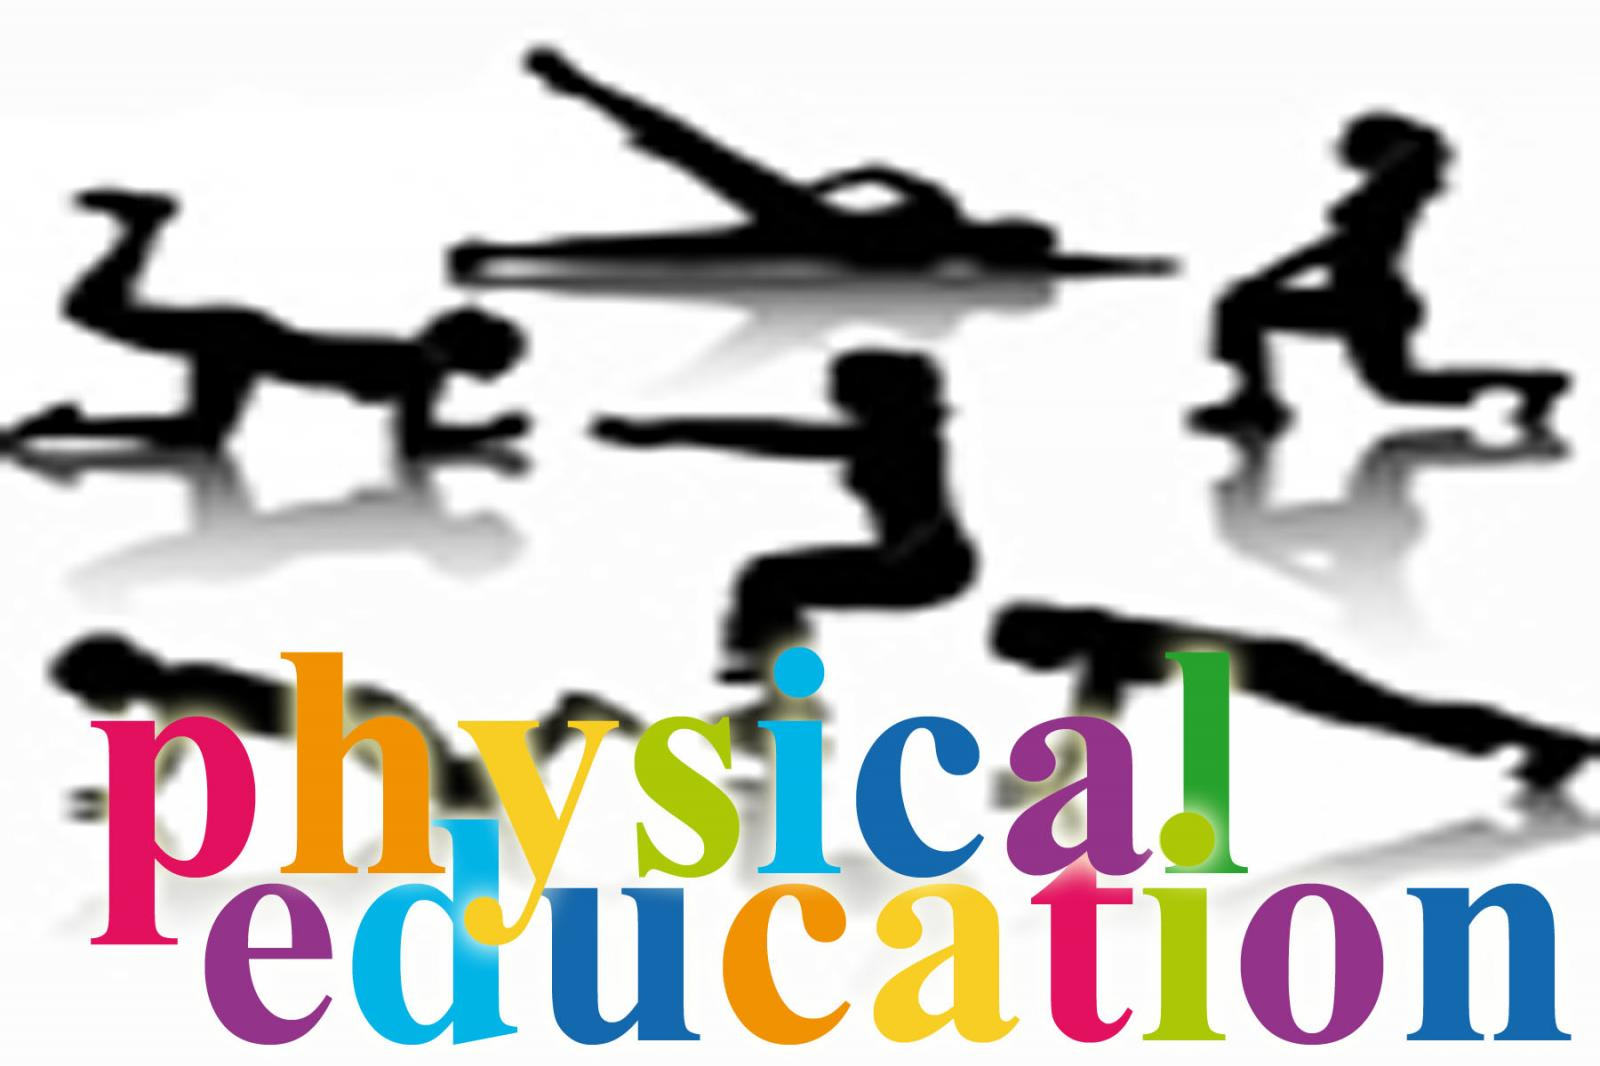 clipart physical education - photo #24